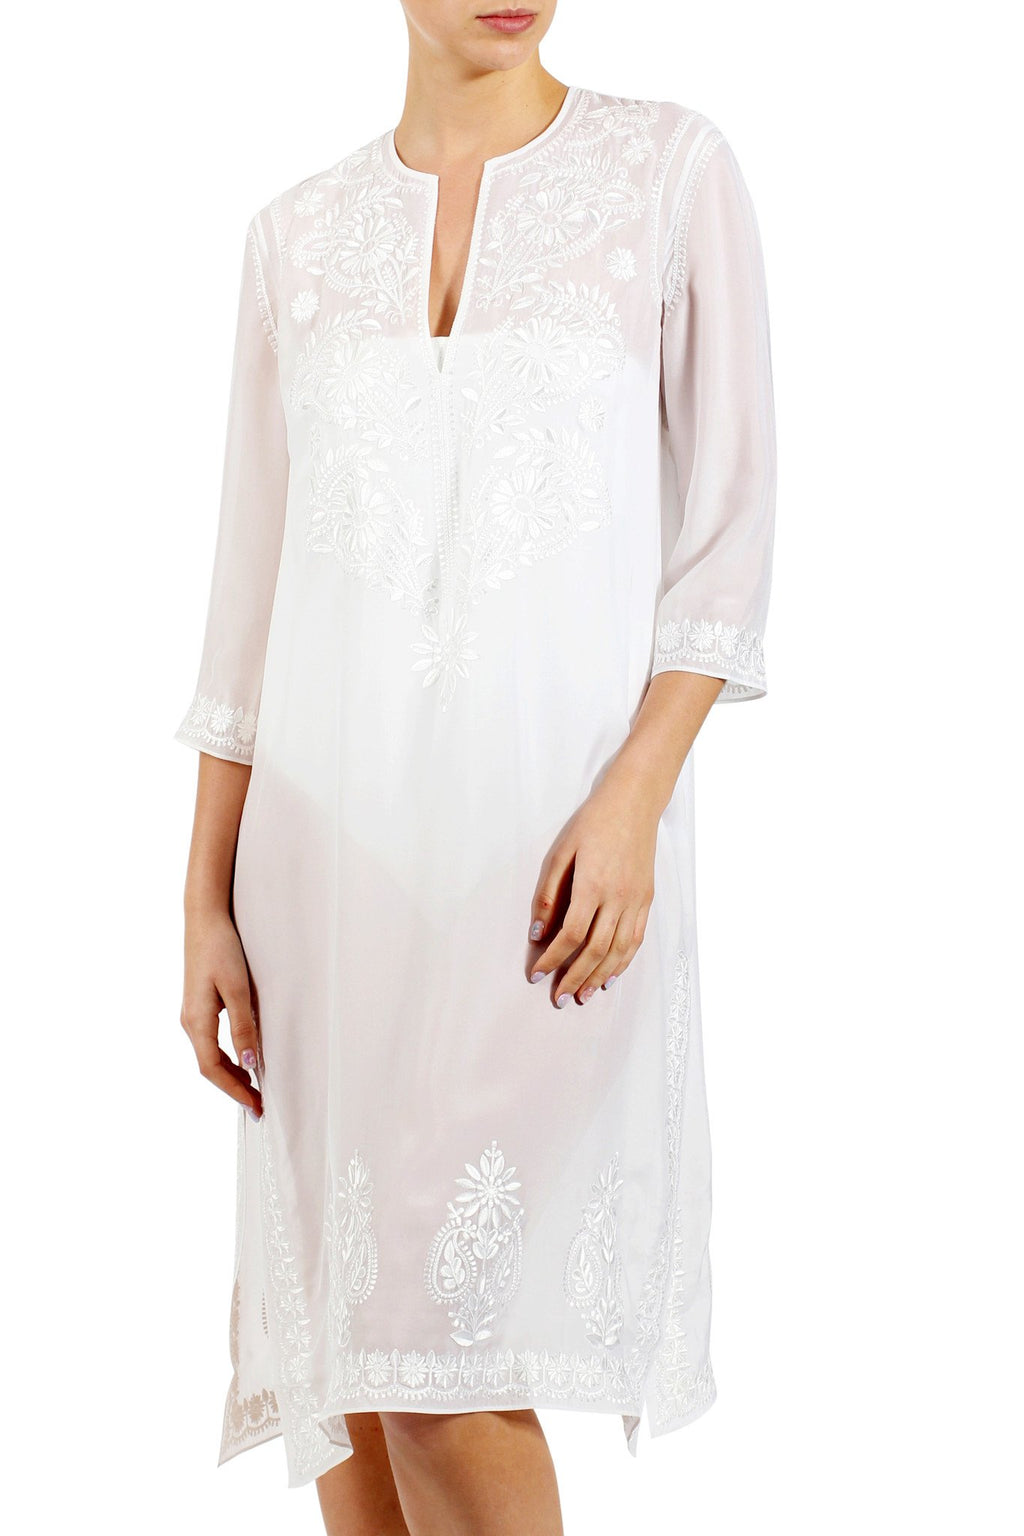 Silk Embroidered Midi Length Tunic Tunics Marie France Van Damme White 0